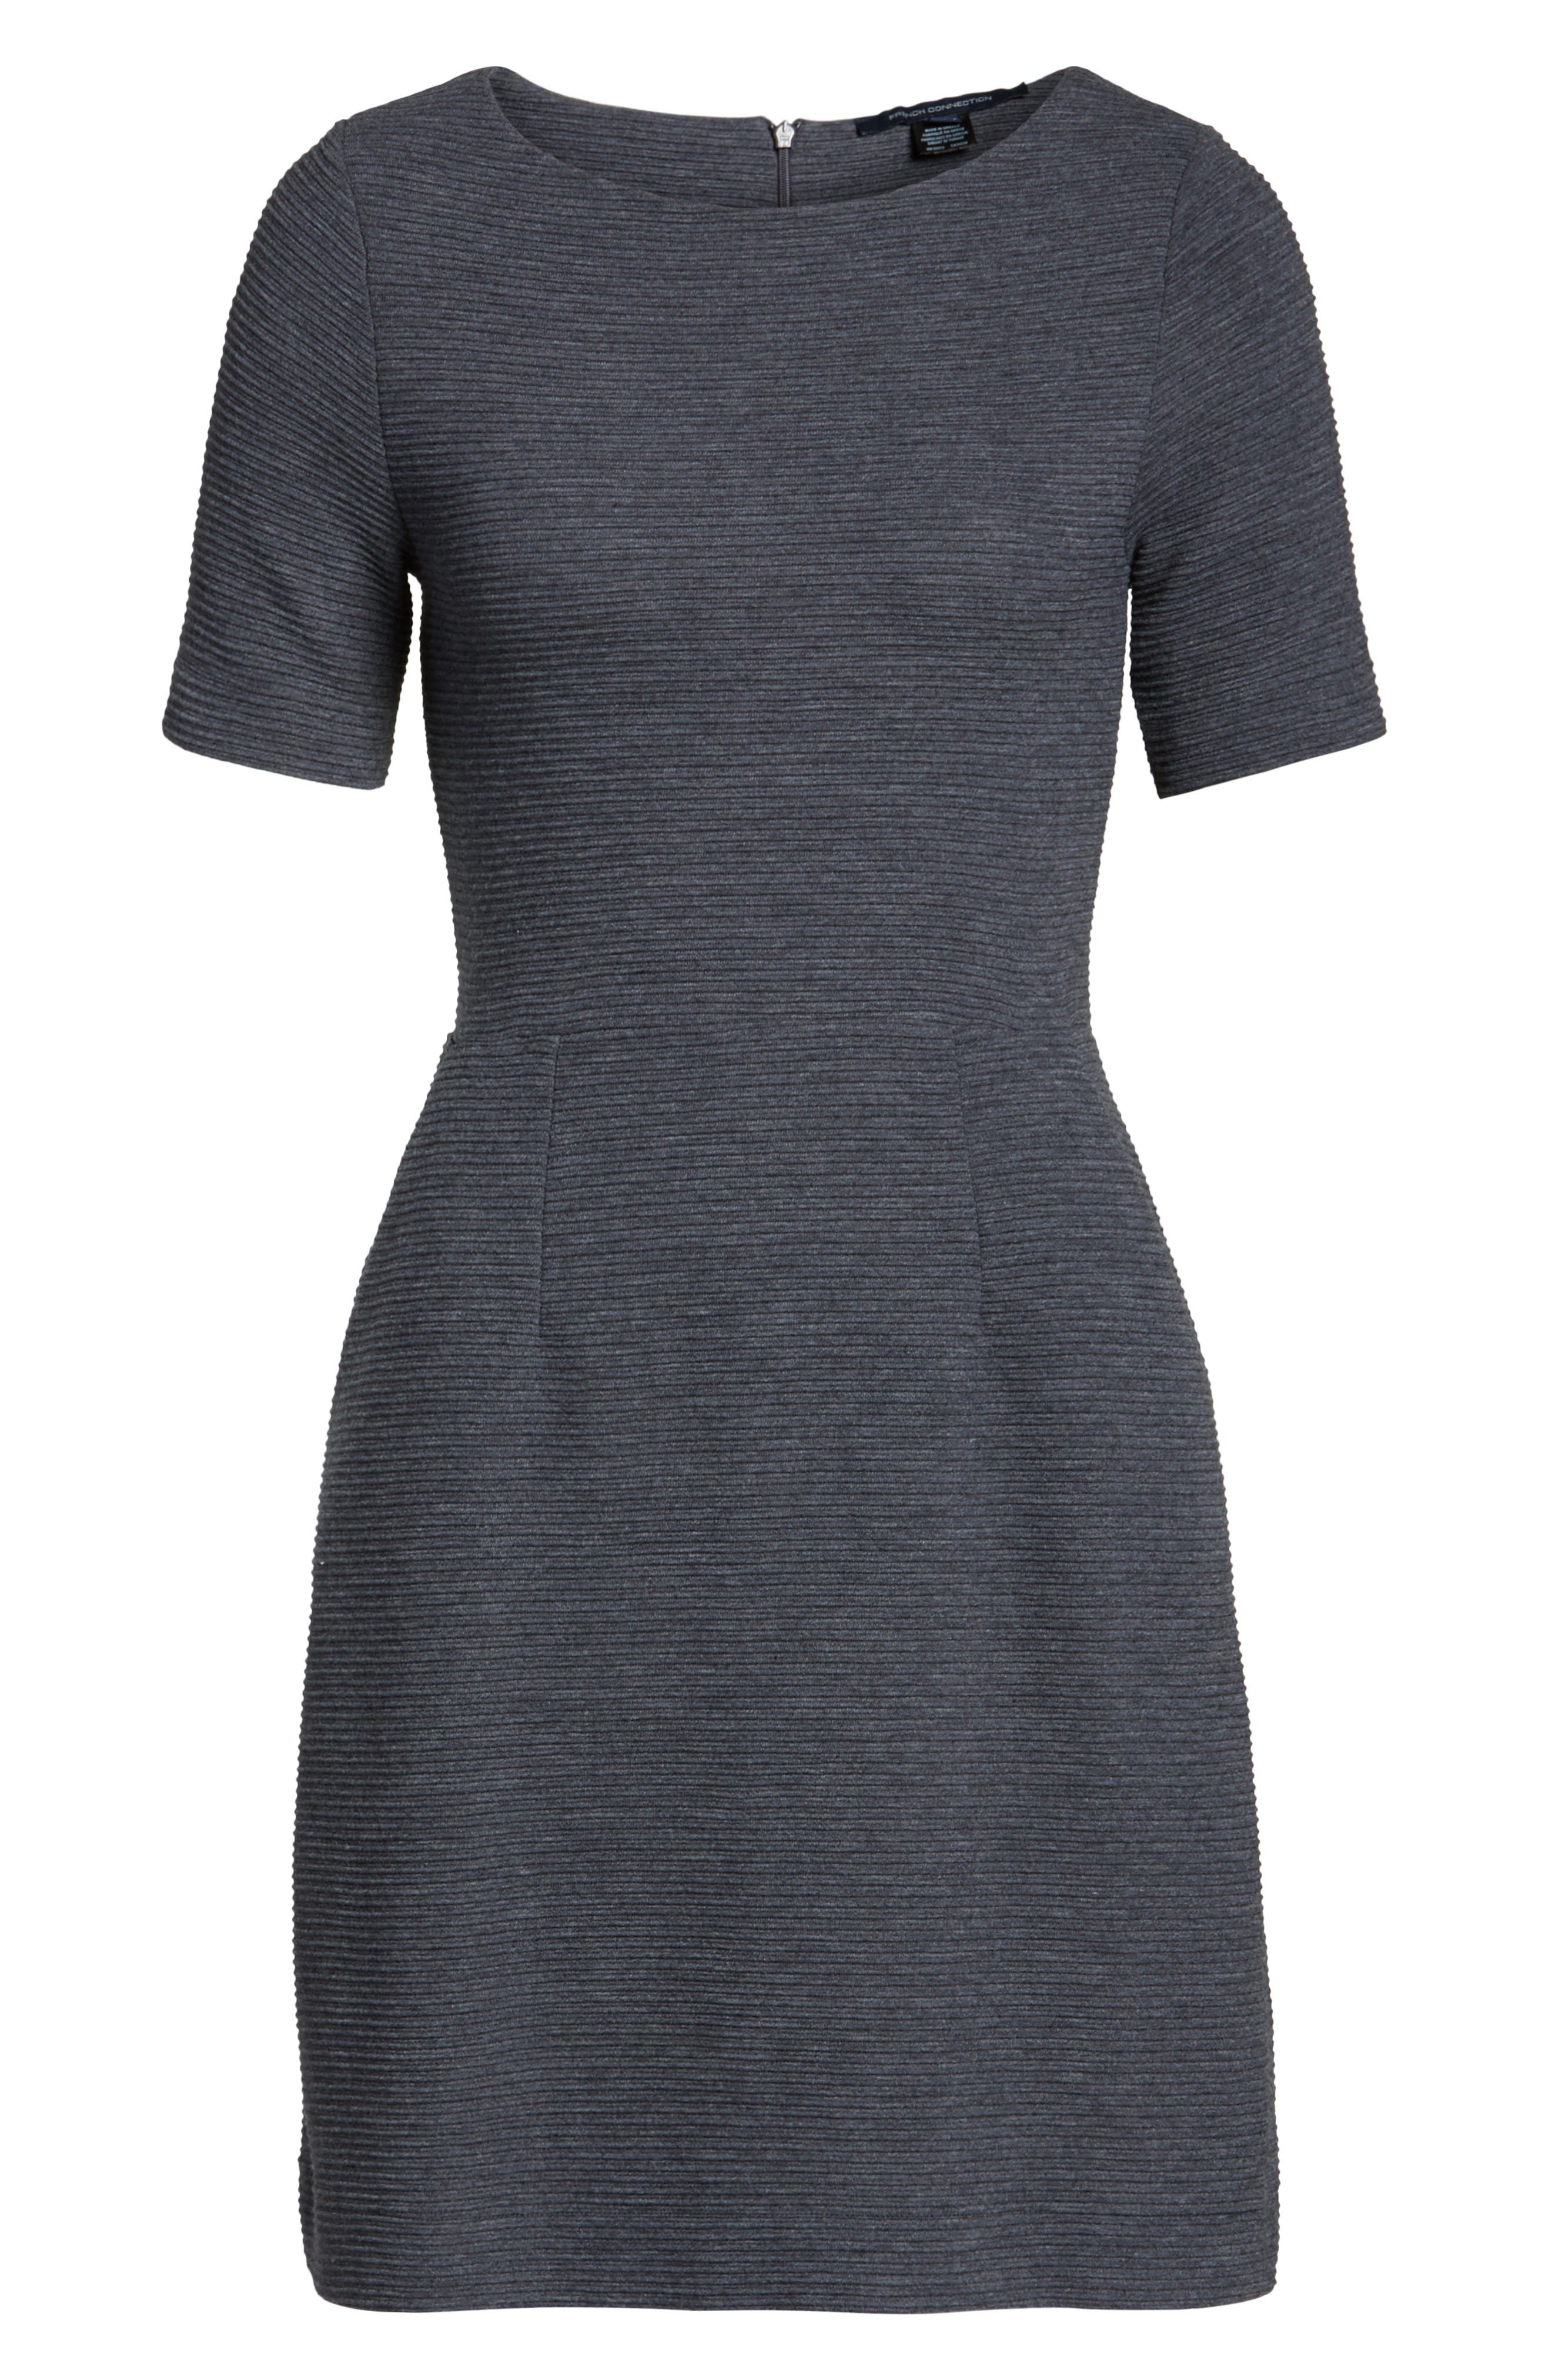 Sudan Fit & Flare Dress,                             Main thumbnail 1, color,                             Dark Grey